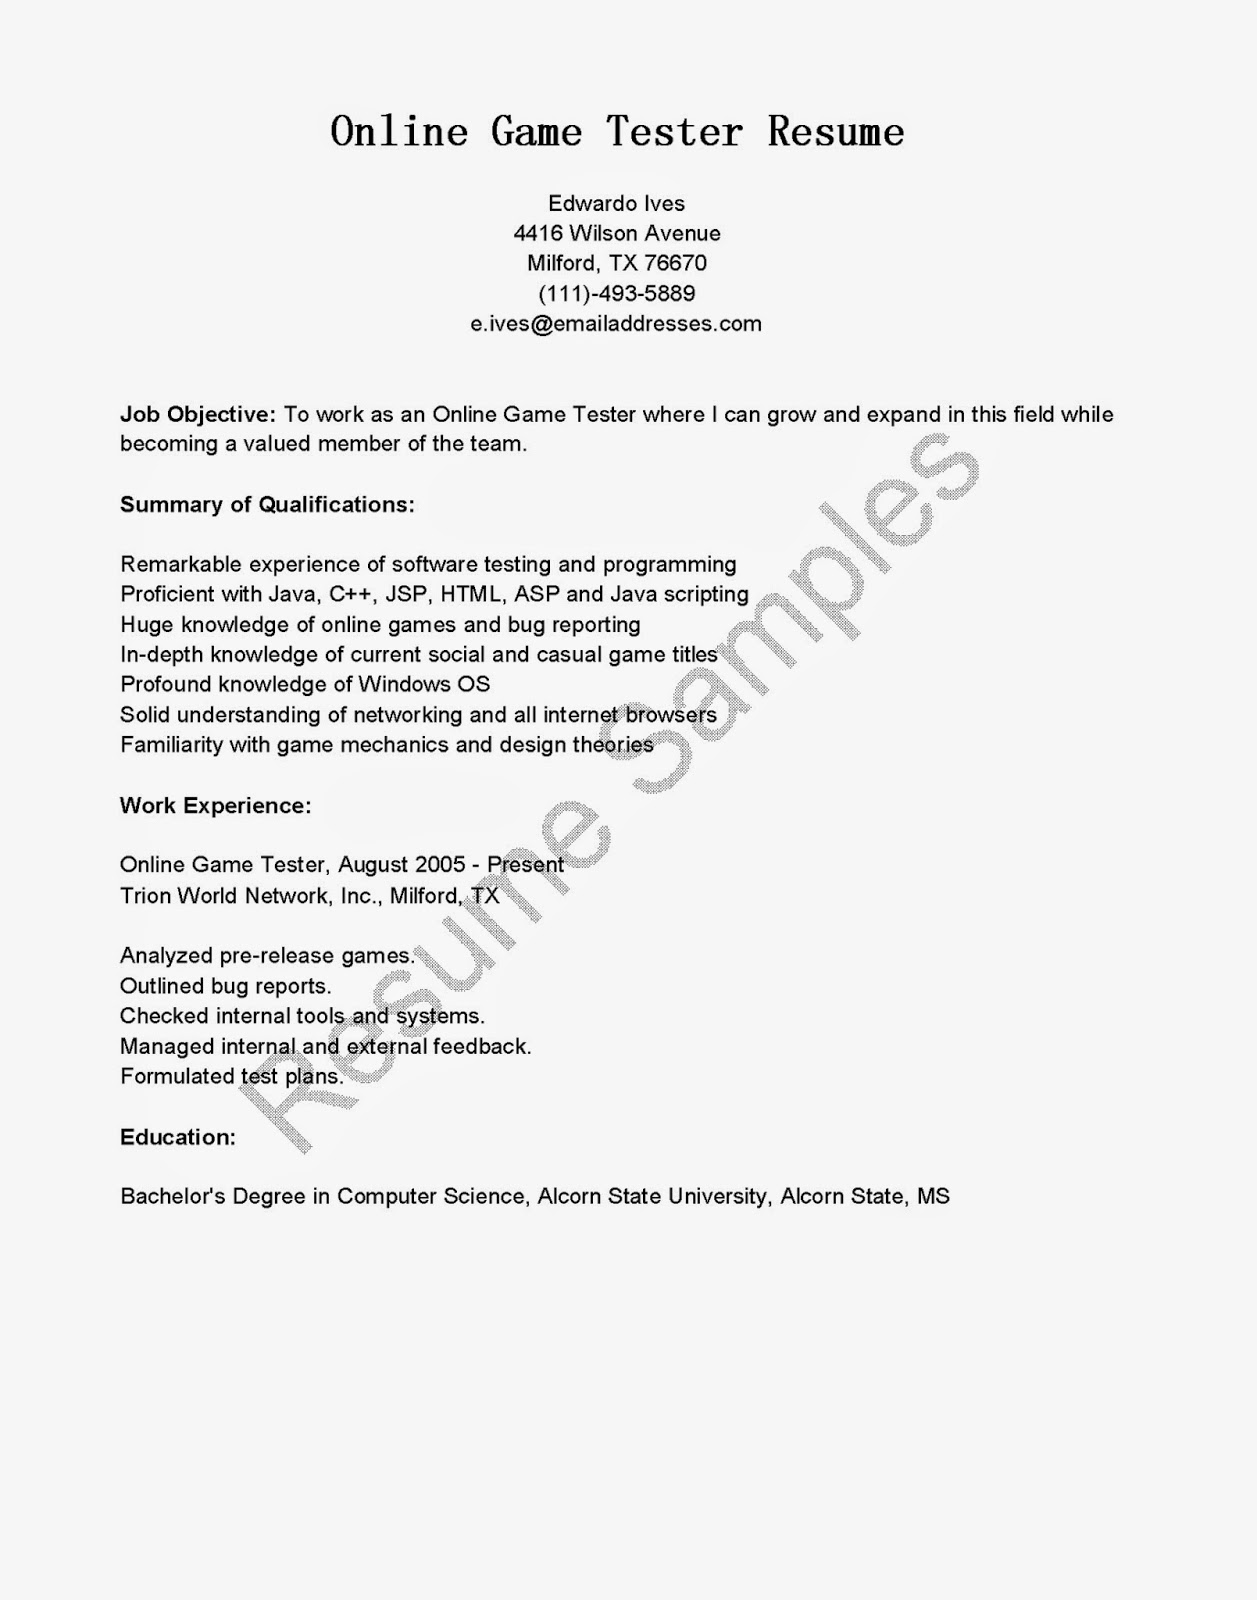 resume samples  online game tester resume sample